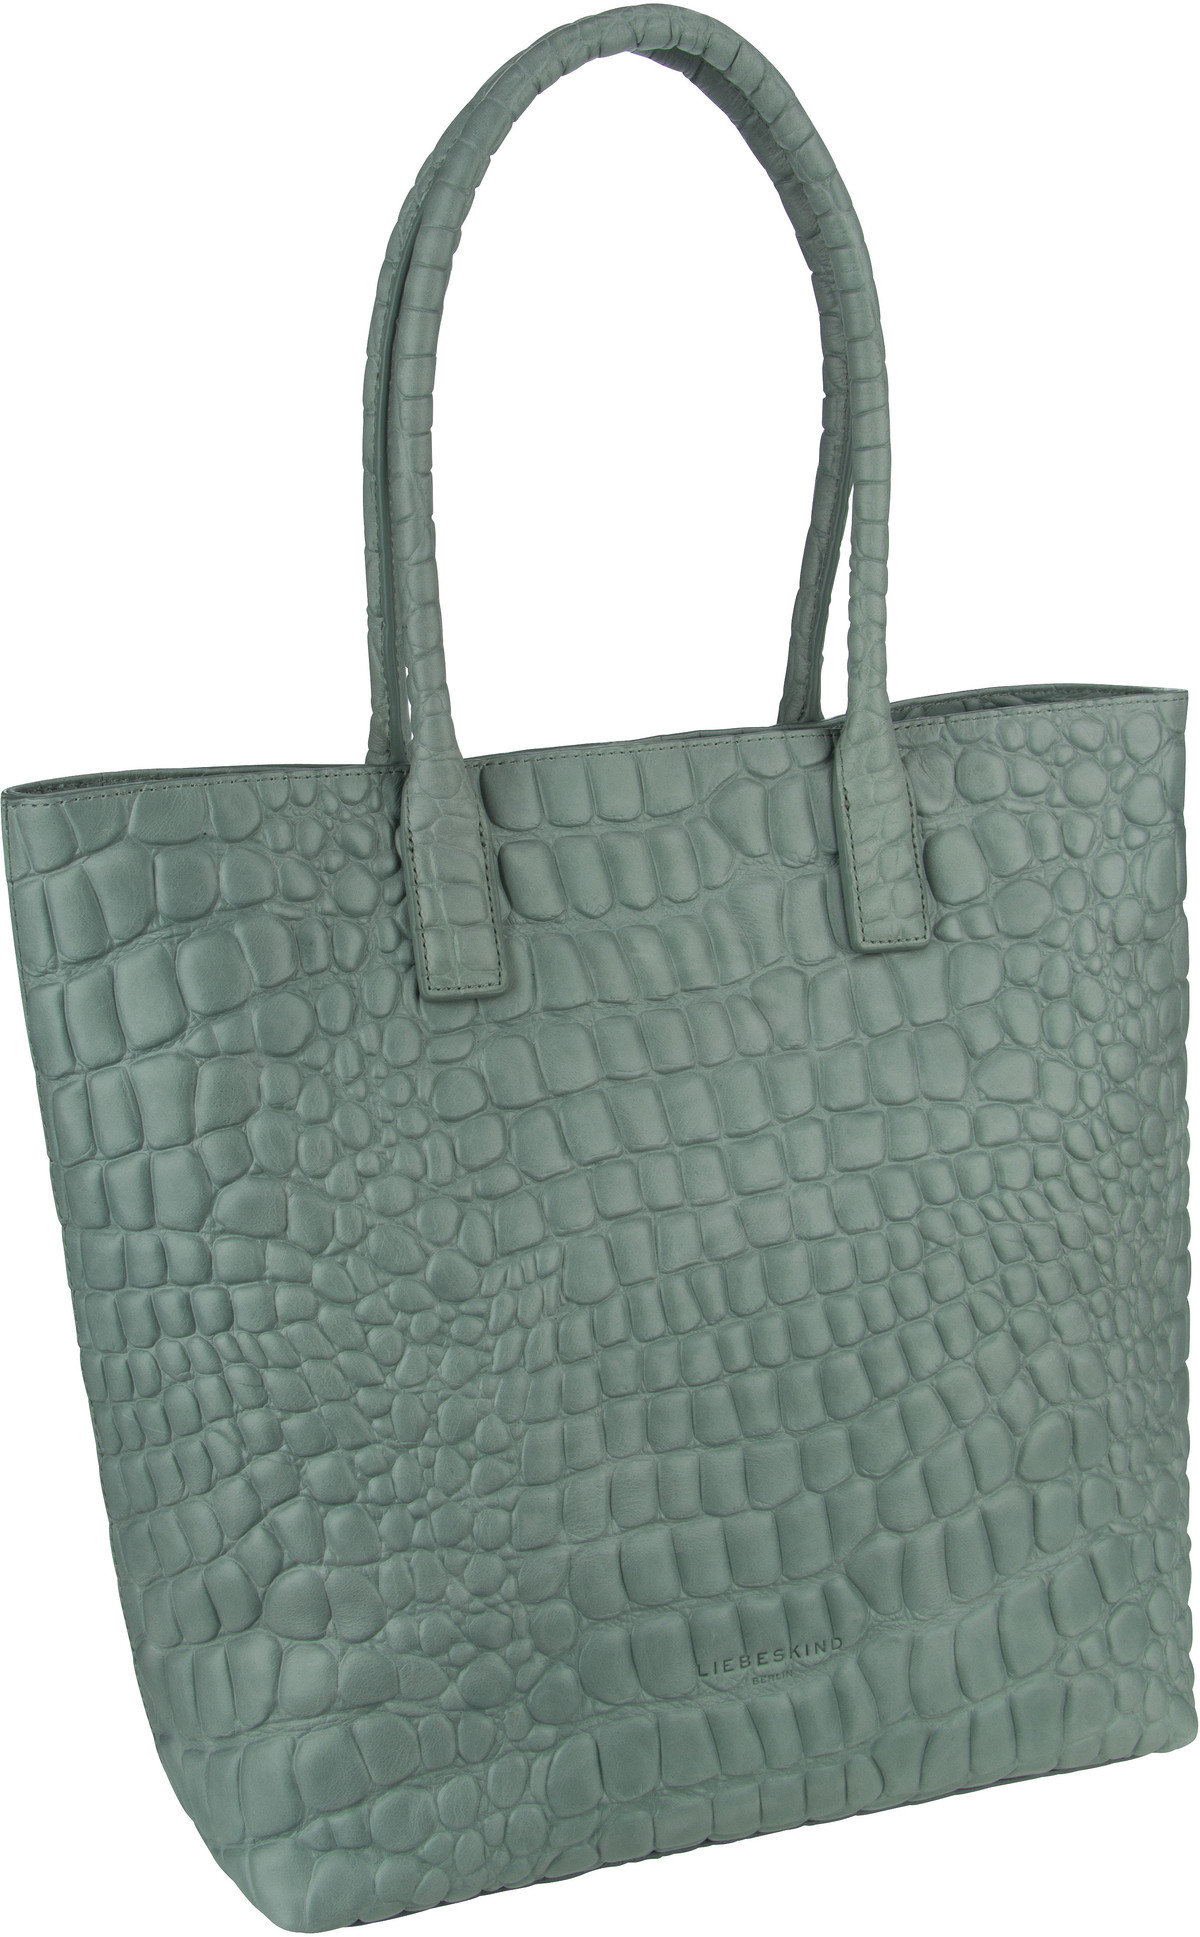 Berlin Handtasche Malibu Tote L Light Blue Mist